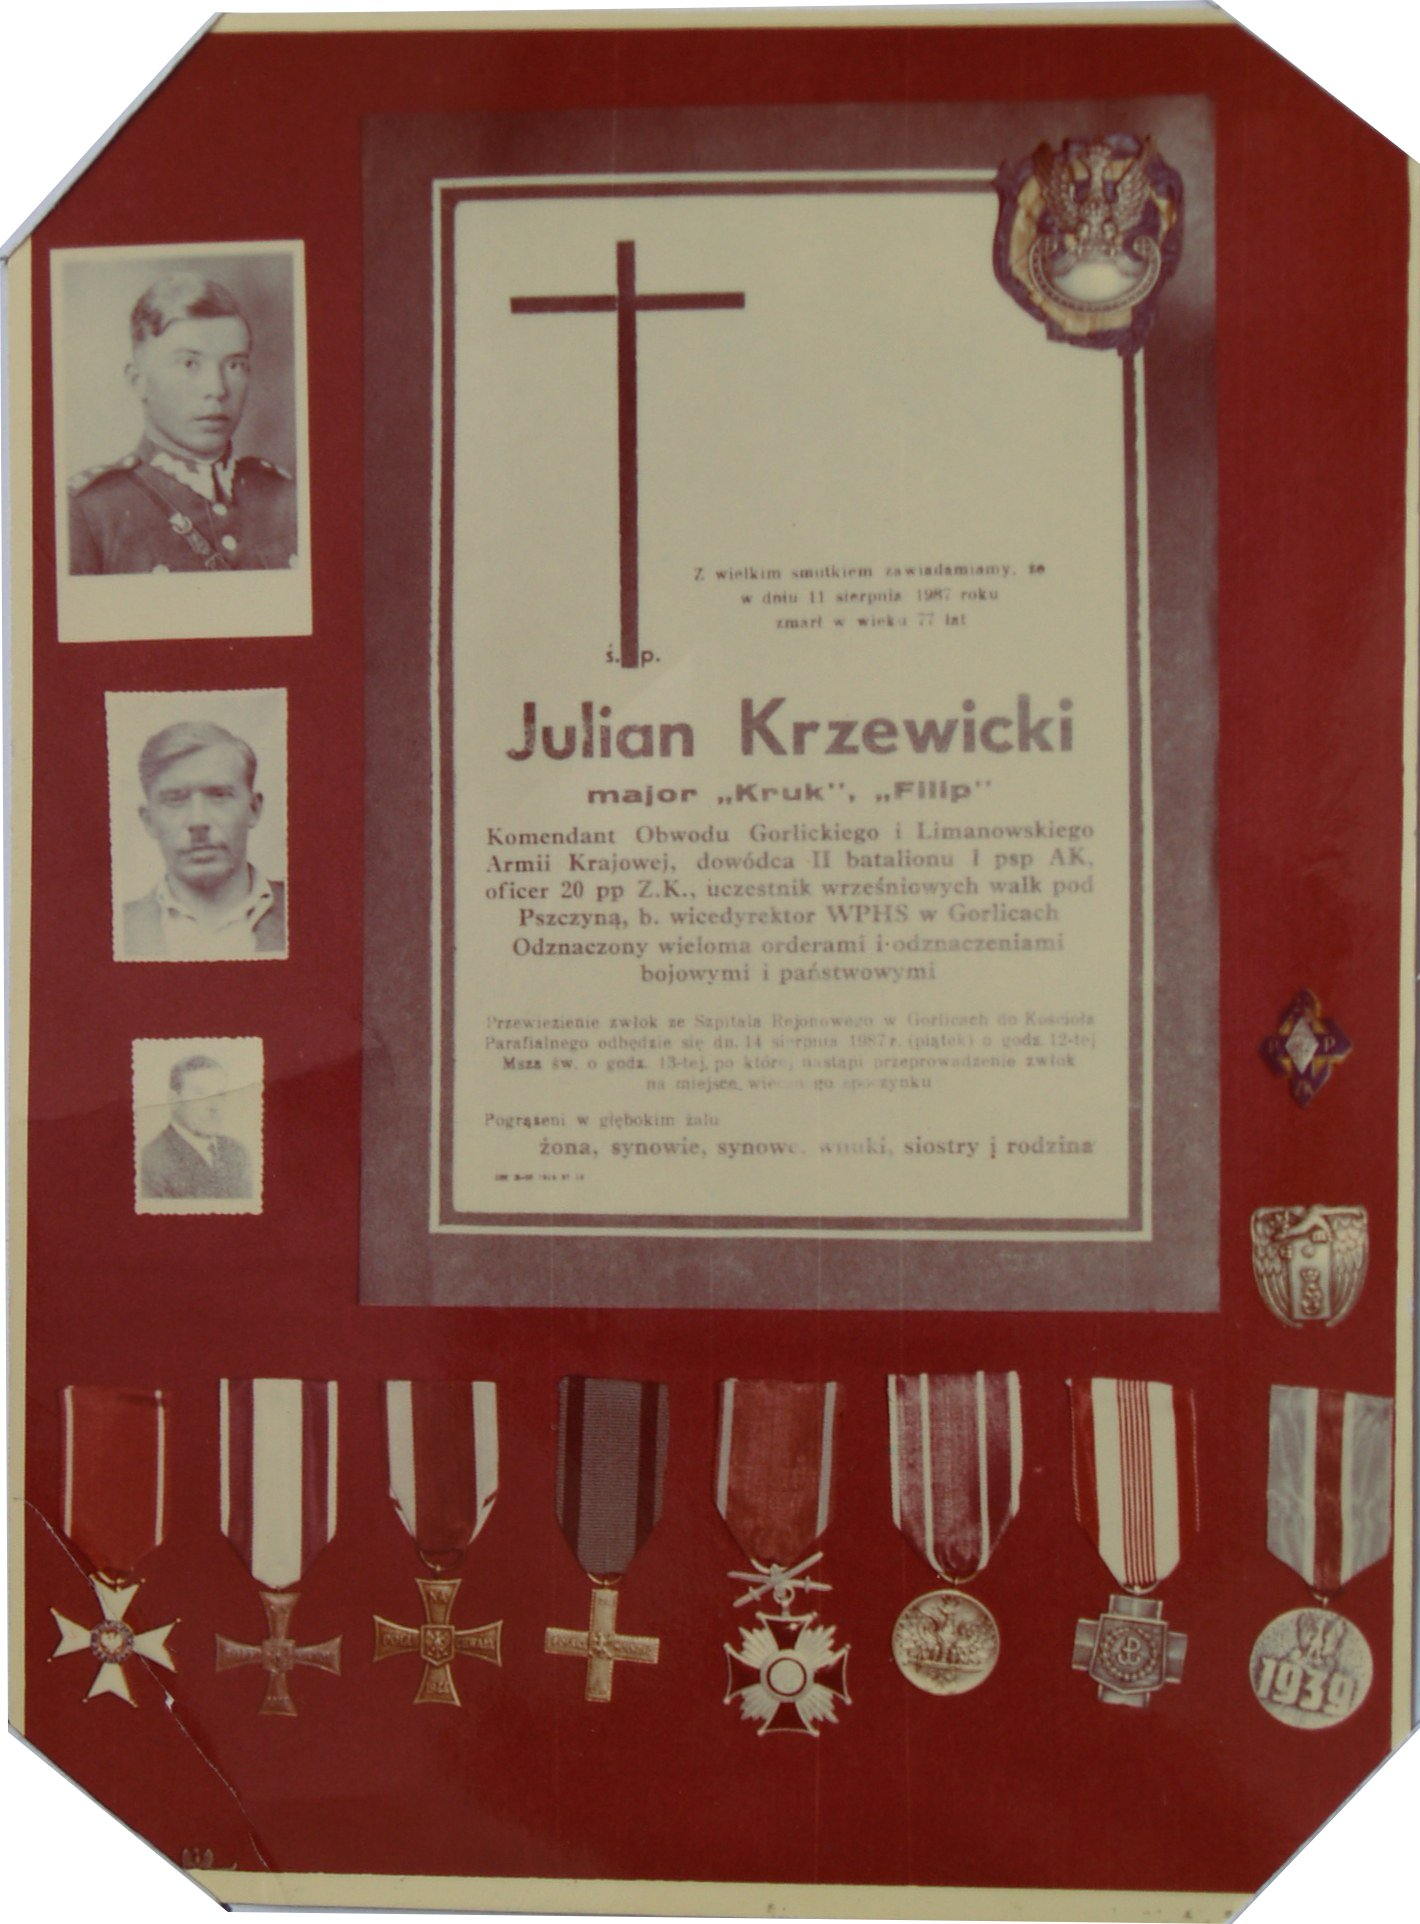 PHOTO of Plaque Commemerating Julian Krzewicki Military Achievements During WW II